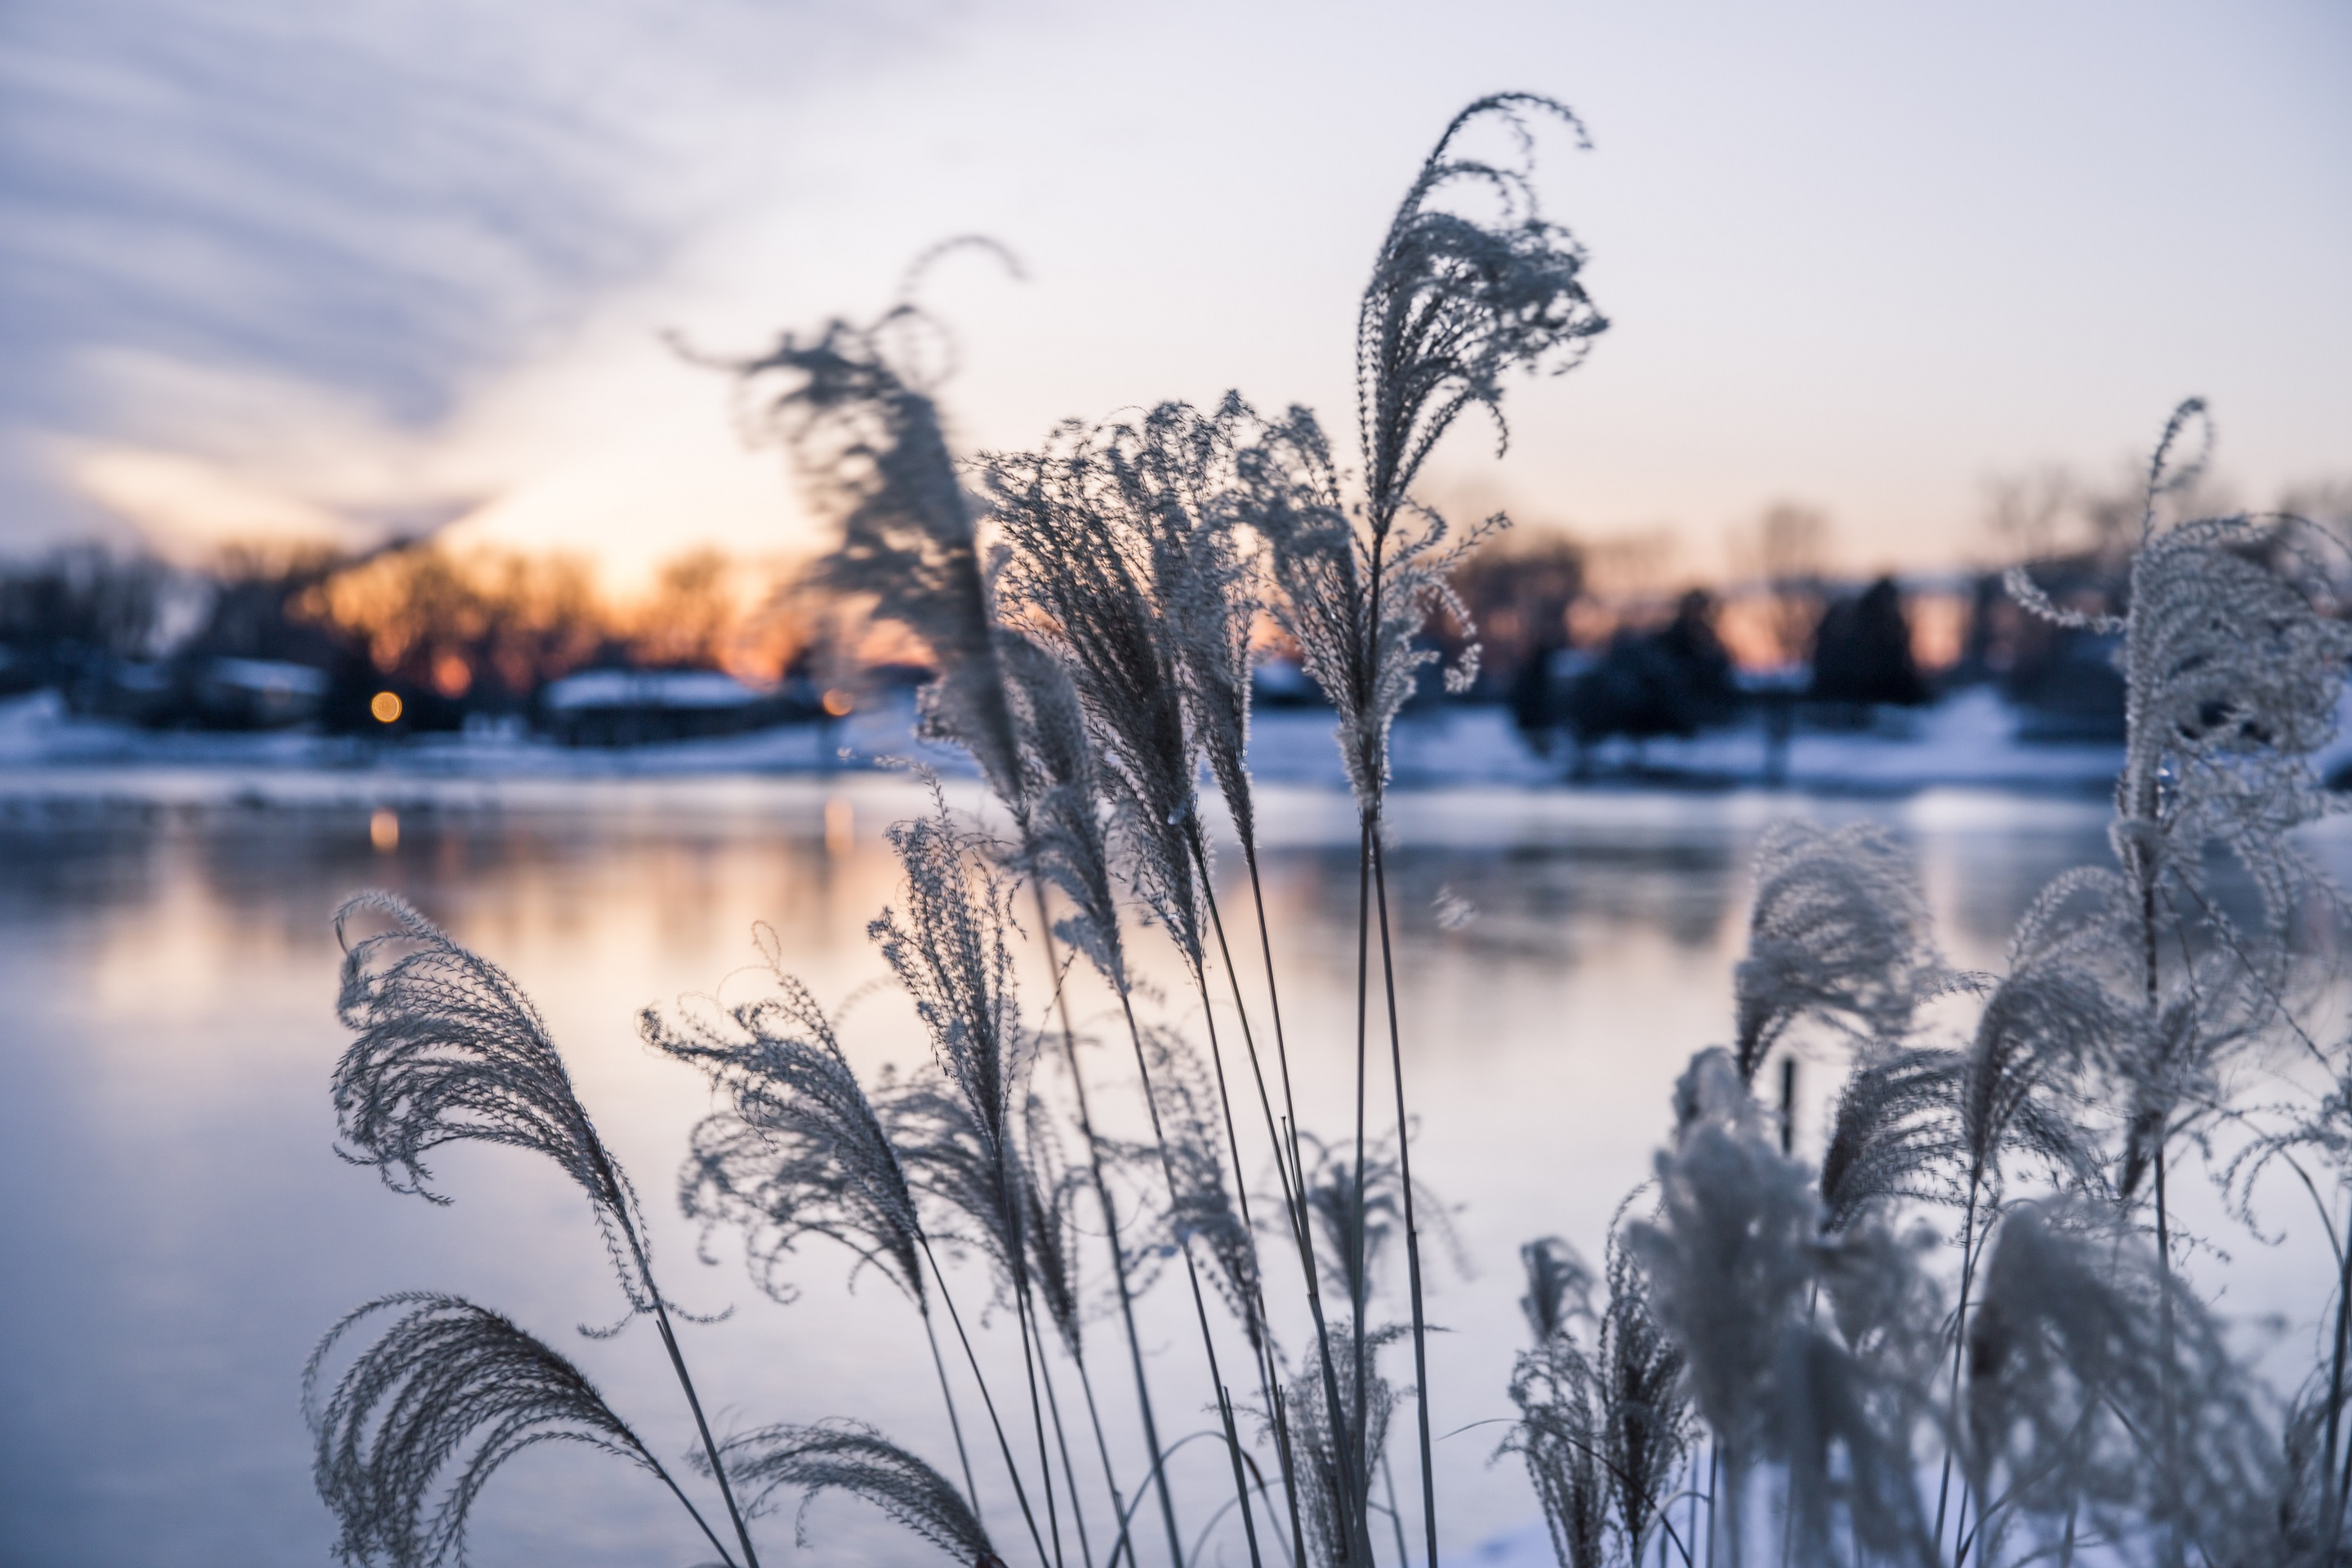 Ornamental High Grasses in the Wind in Golden Winter Sunset over